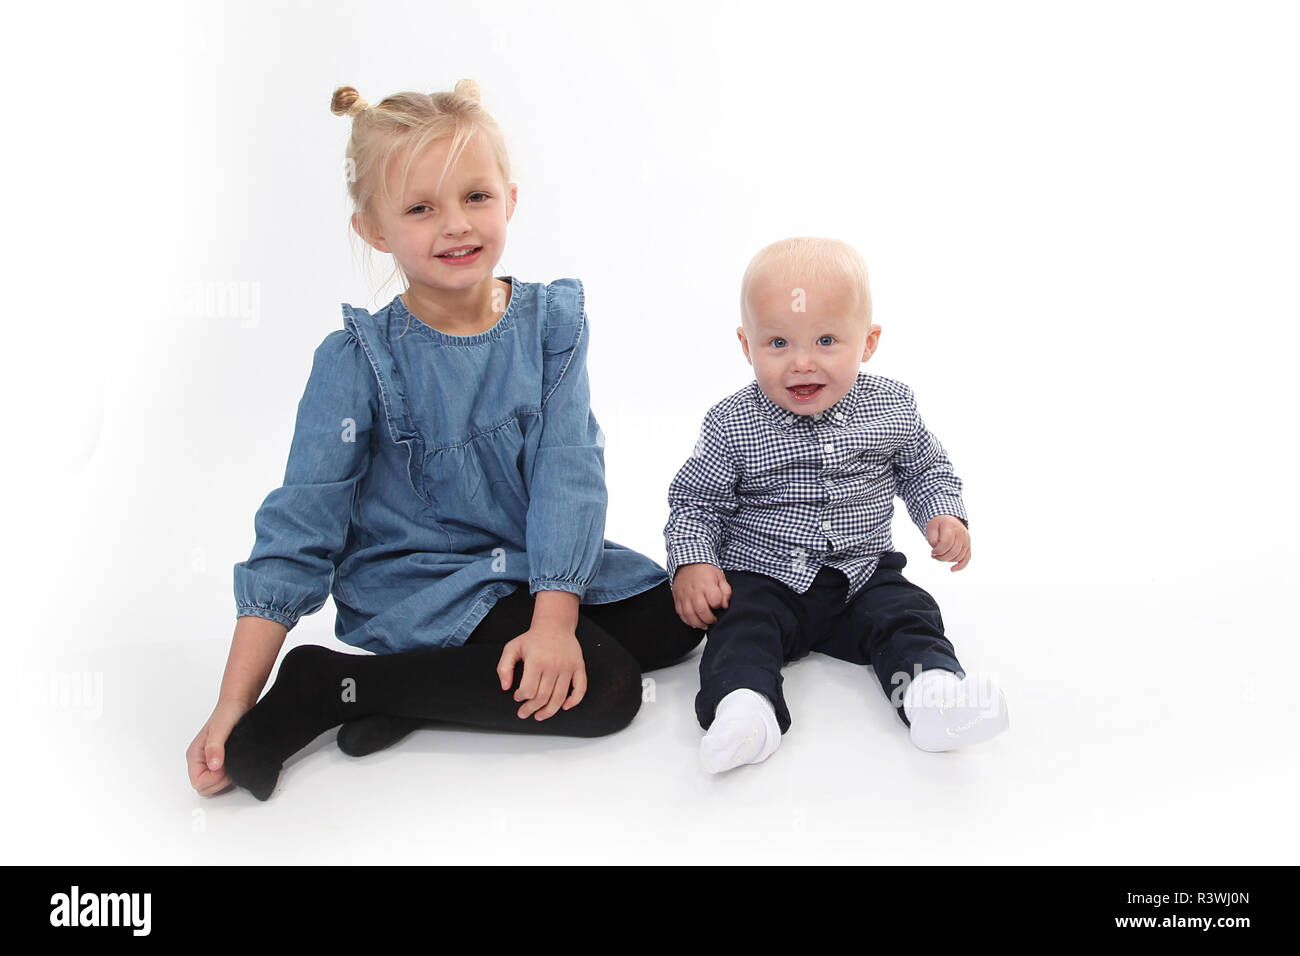 Brother and sister, family life - Stock Image